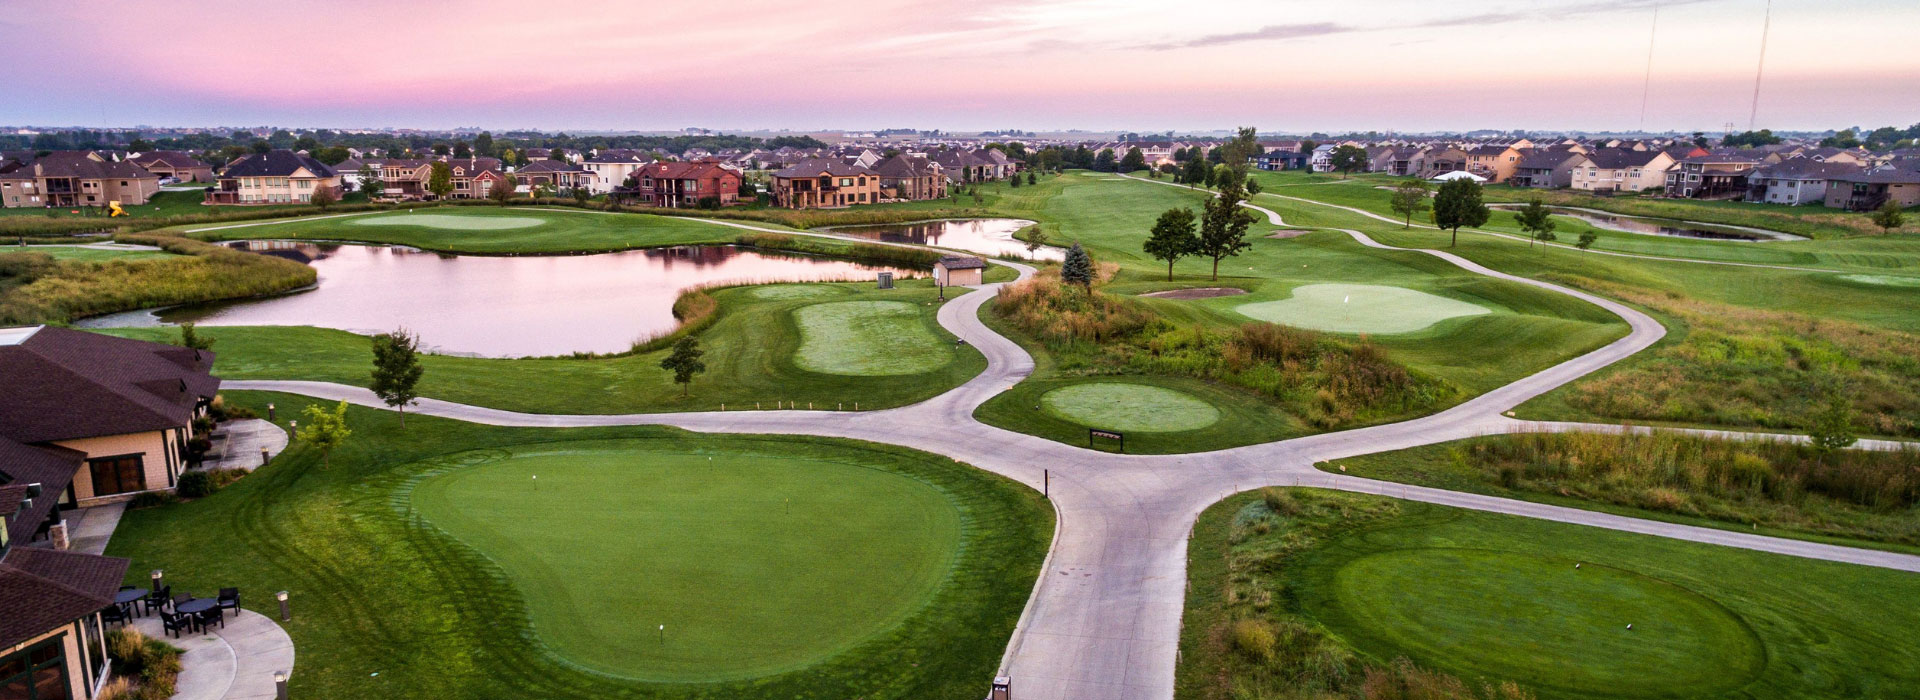 otter-creek-golf-course-sunset-aerial-photo